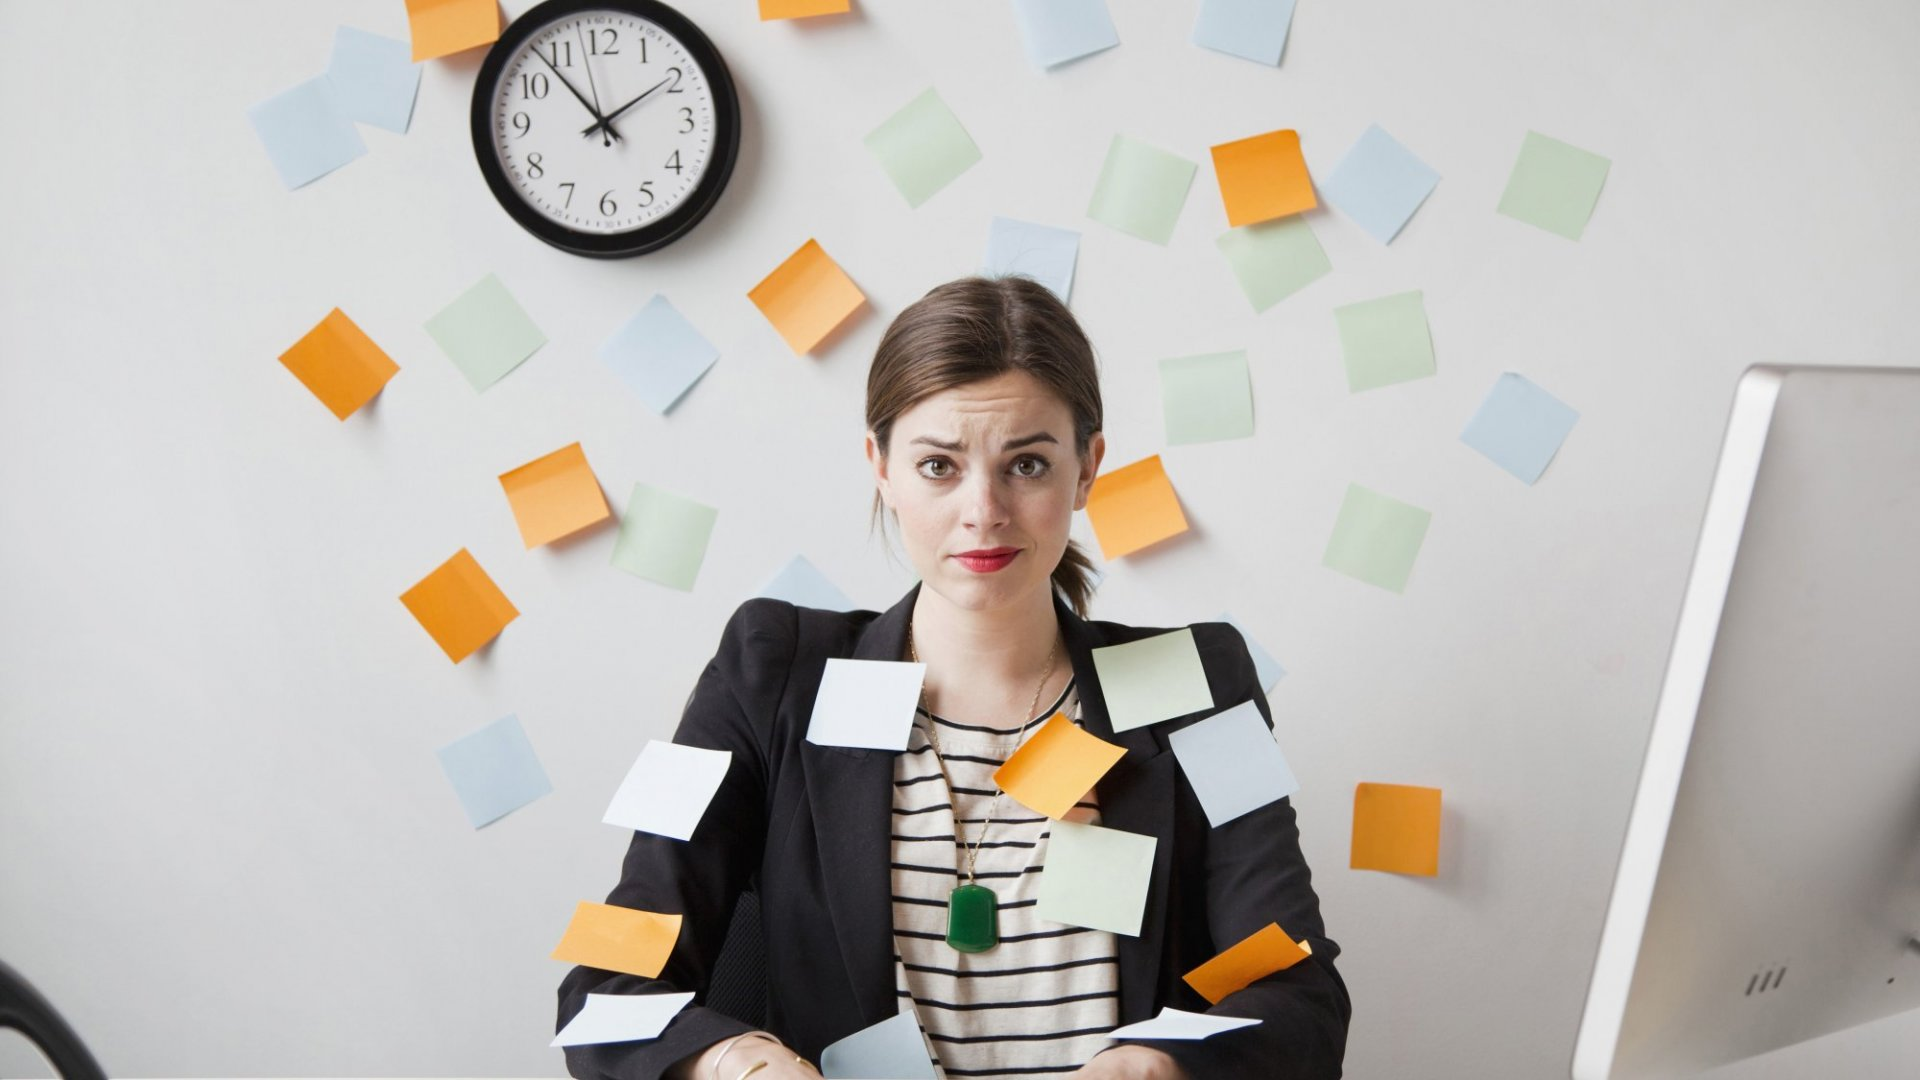 3 Simple Time-Management Tricks to Boost Your Employees' Productivity